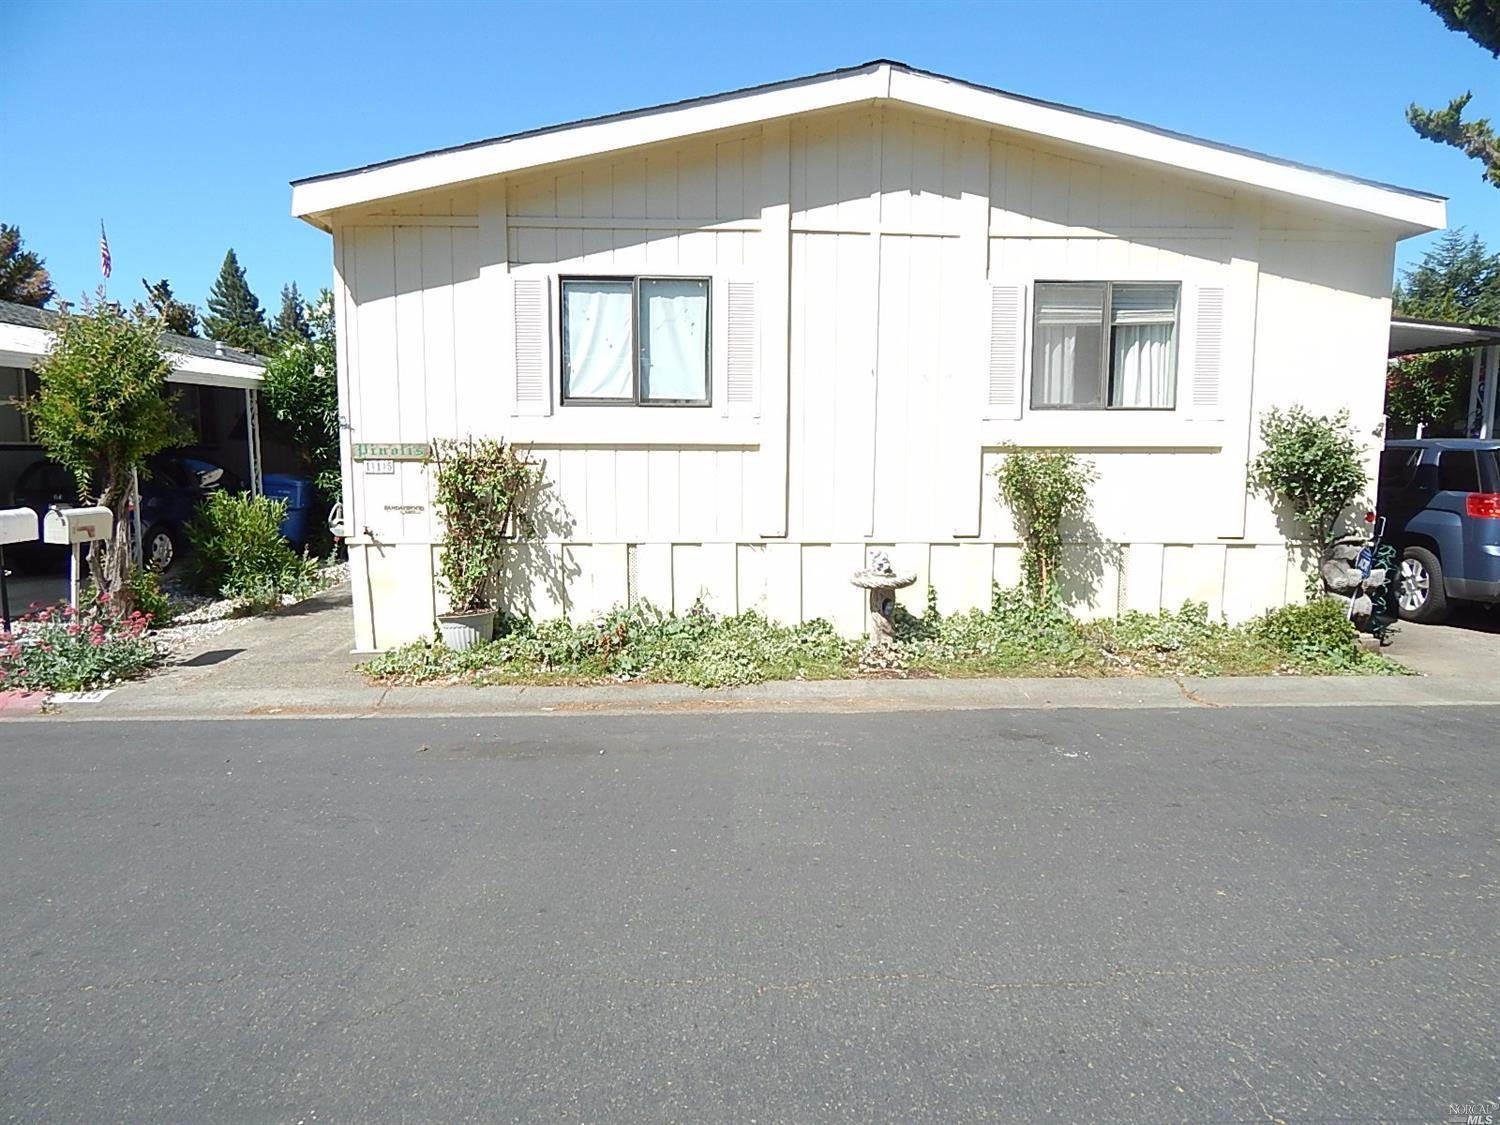 Photo of 700 East Gobbi Street 115  Ukiah  CA